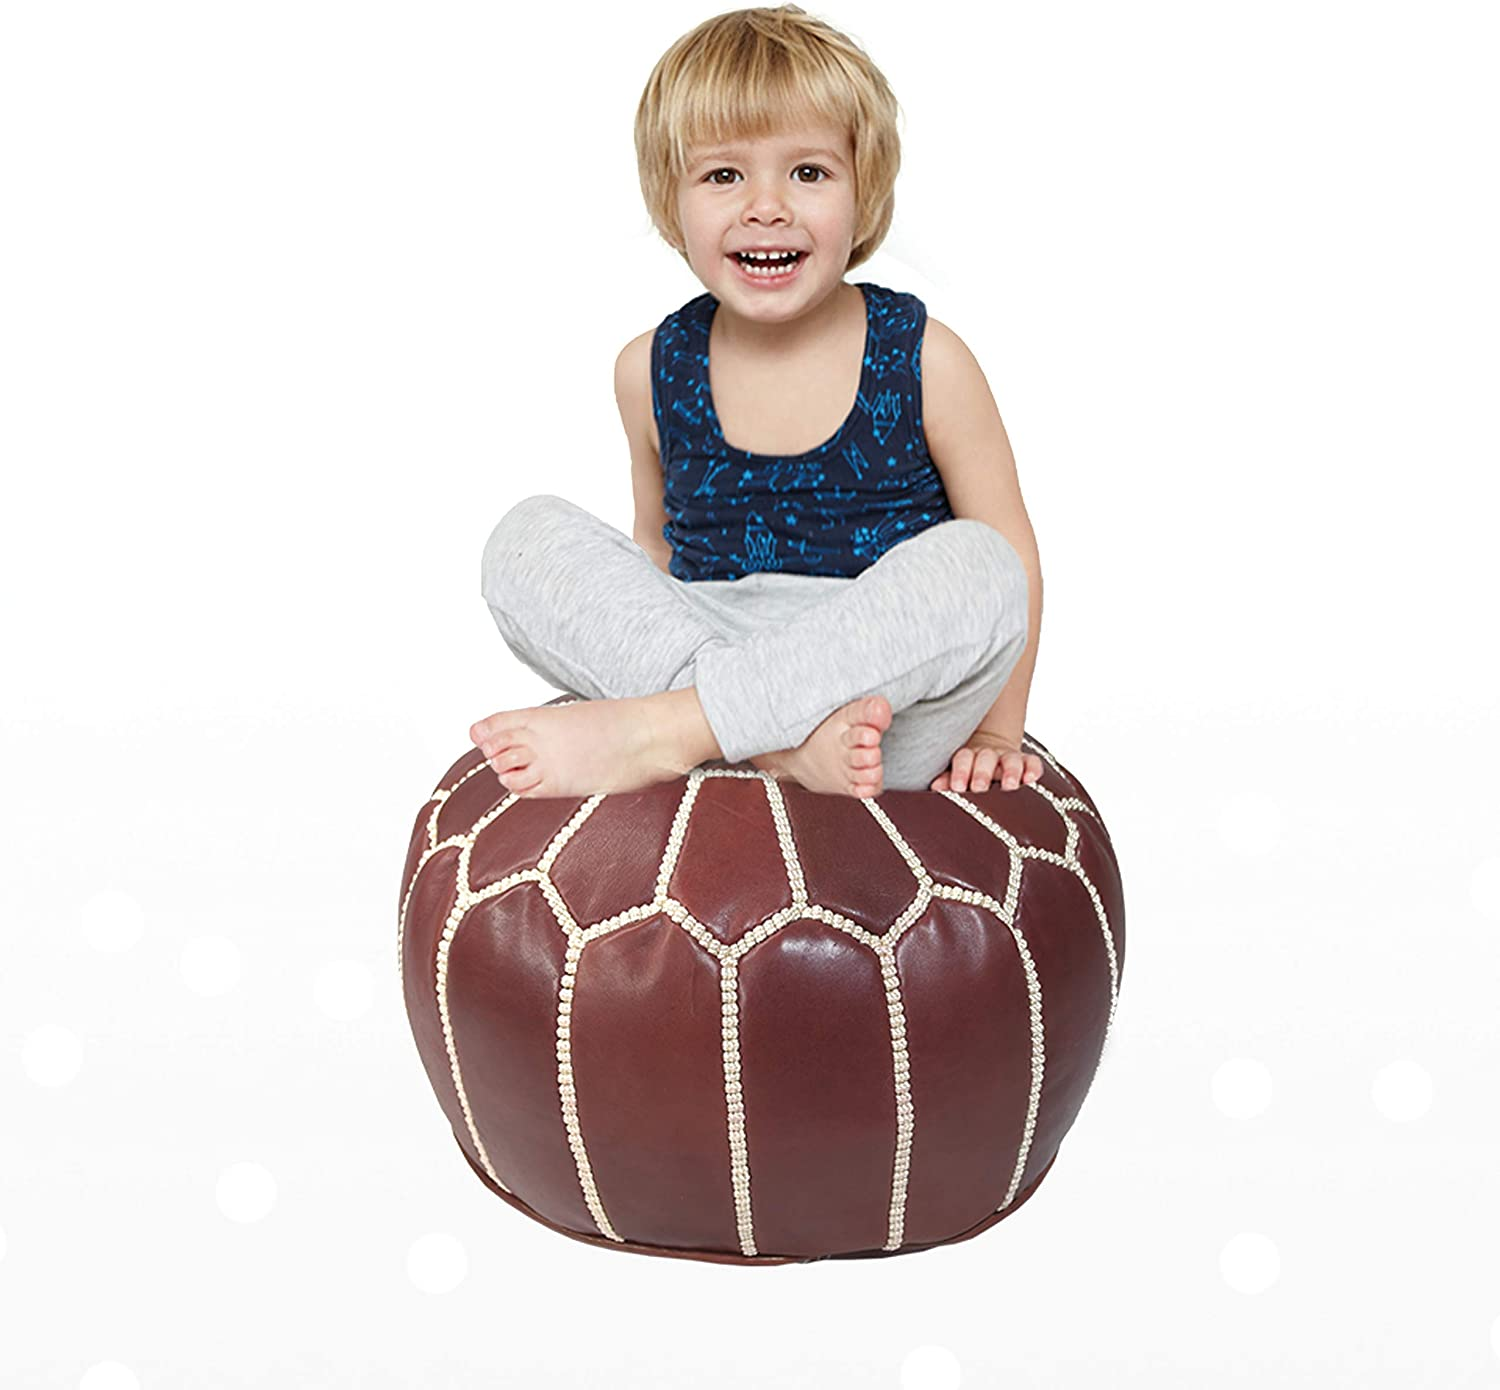 Marrakesh Gallery Moroccan Kids Pouf Cover - Round & Small Ottoman Leather Cover Pouf - Bohemian Kids Room Decor - Hassock & Ottoman Footstool Footrest Under Desk - Unstuffed (Maroon)